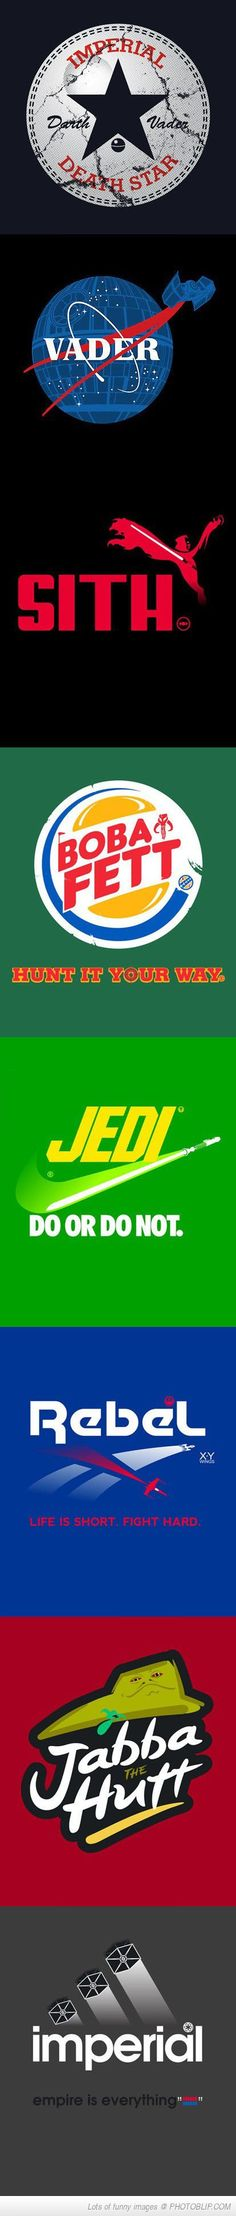 Some Logos In Star Wars Style